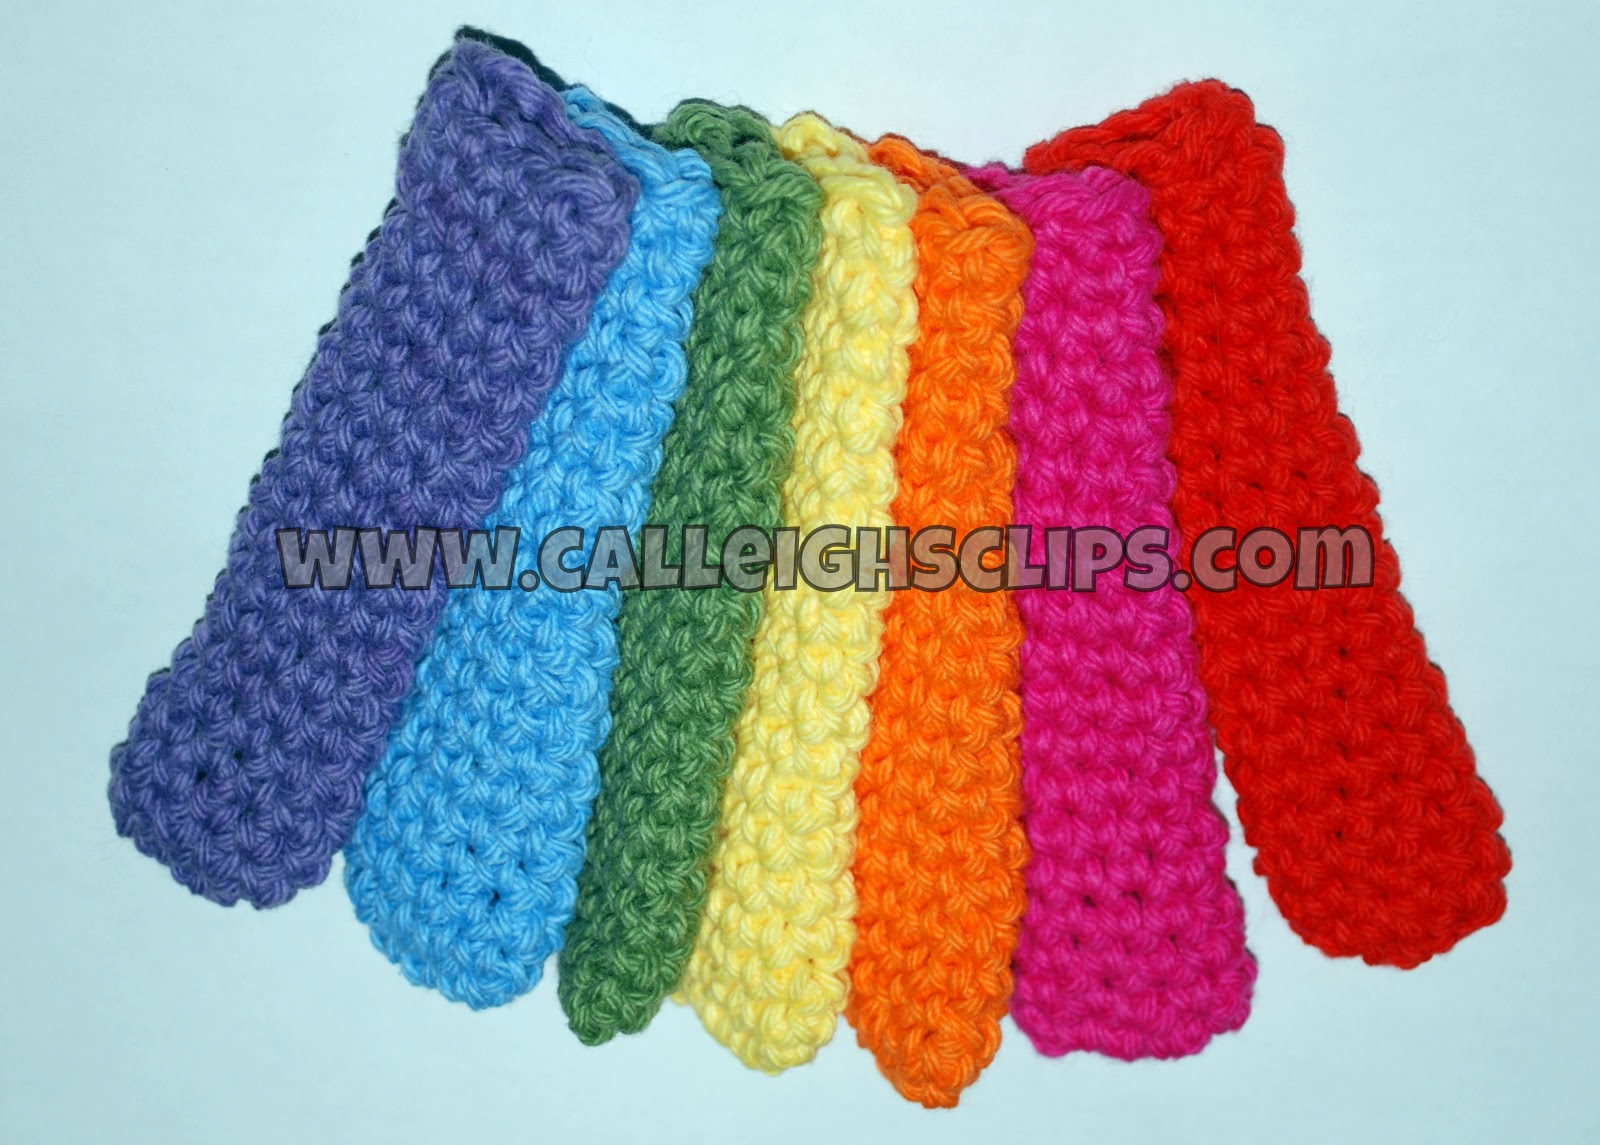 Calleigh\'s Clips & Crochet Creations: Popsicle Snuggy - Free Crochet ...